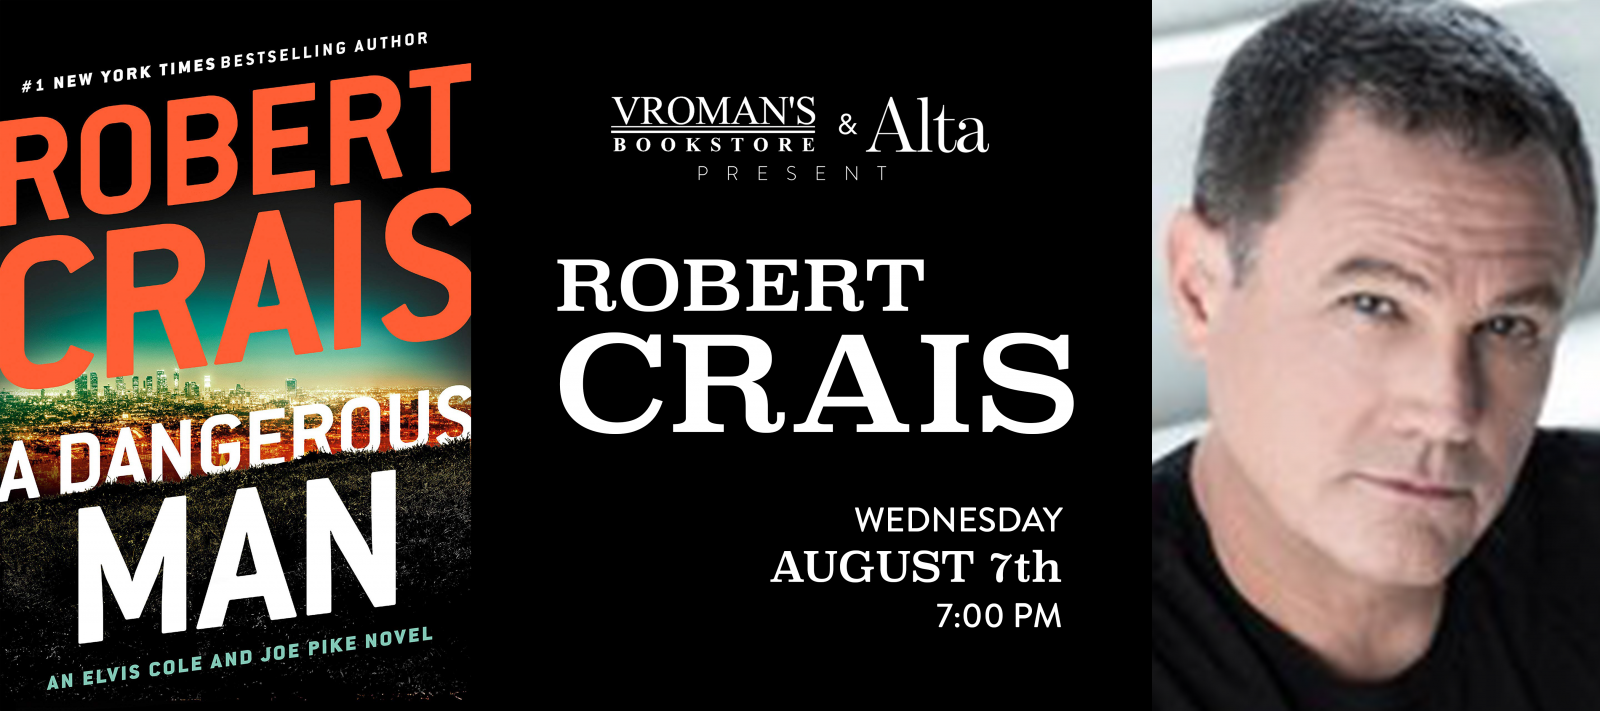 Robert Crais book signing Wednesday August 7th at 7pm